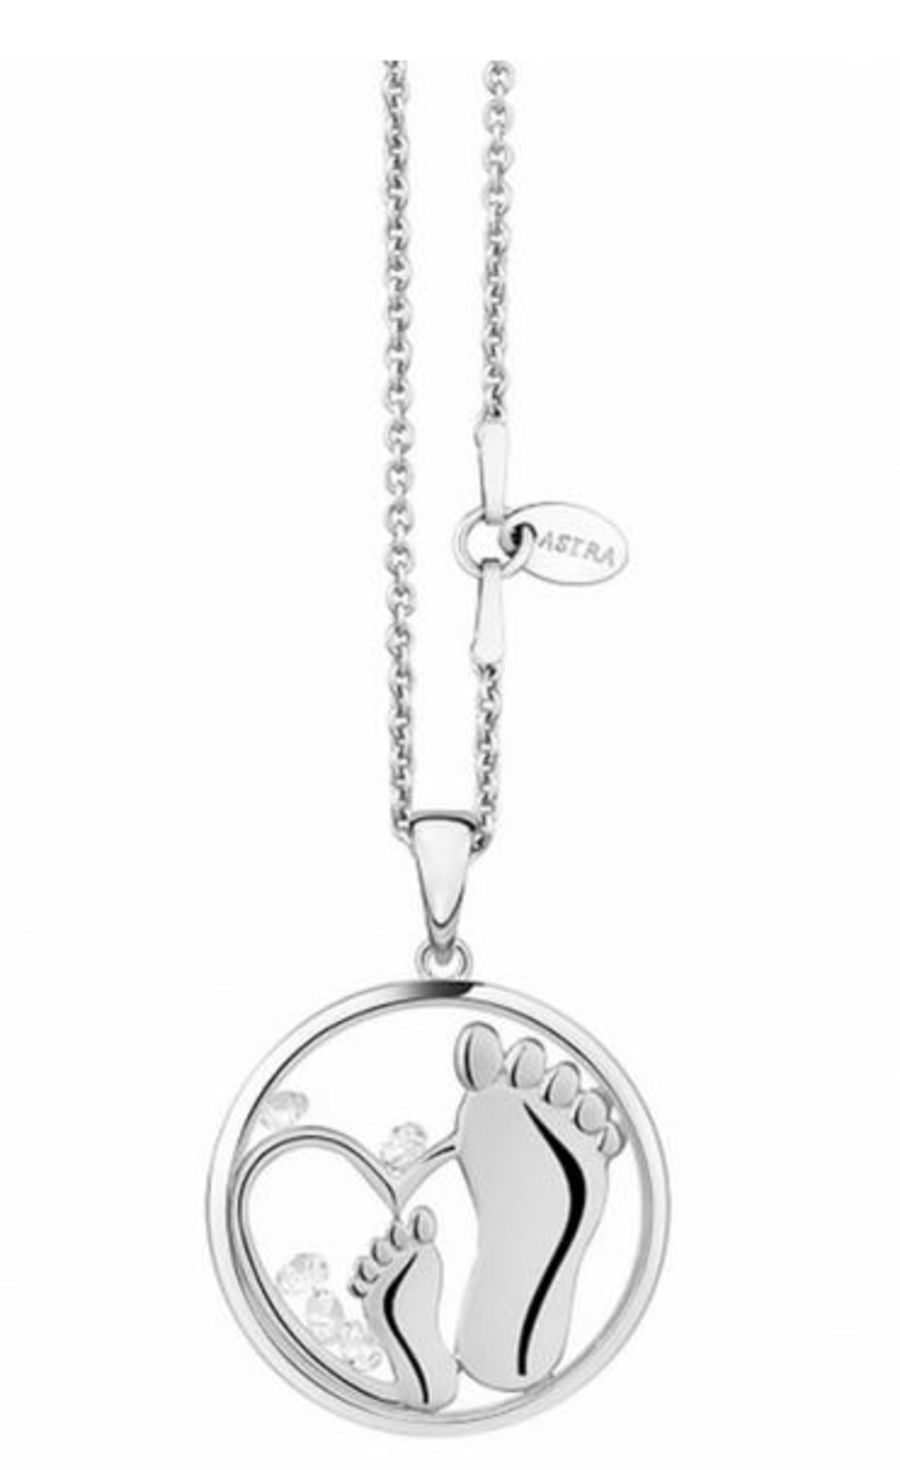 Gift Of Life Silver Pendant & Chain by Astra Jewellery